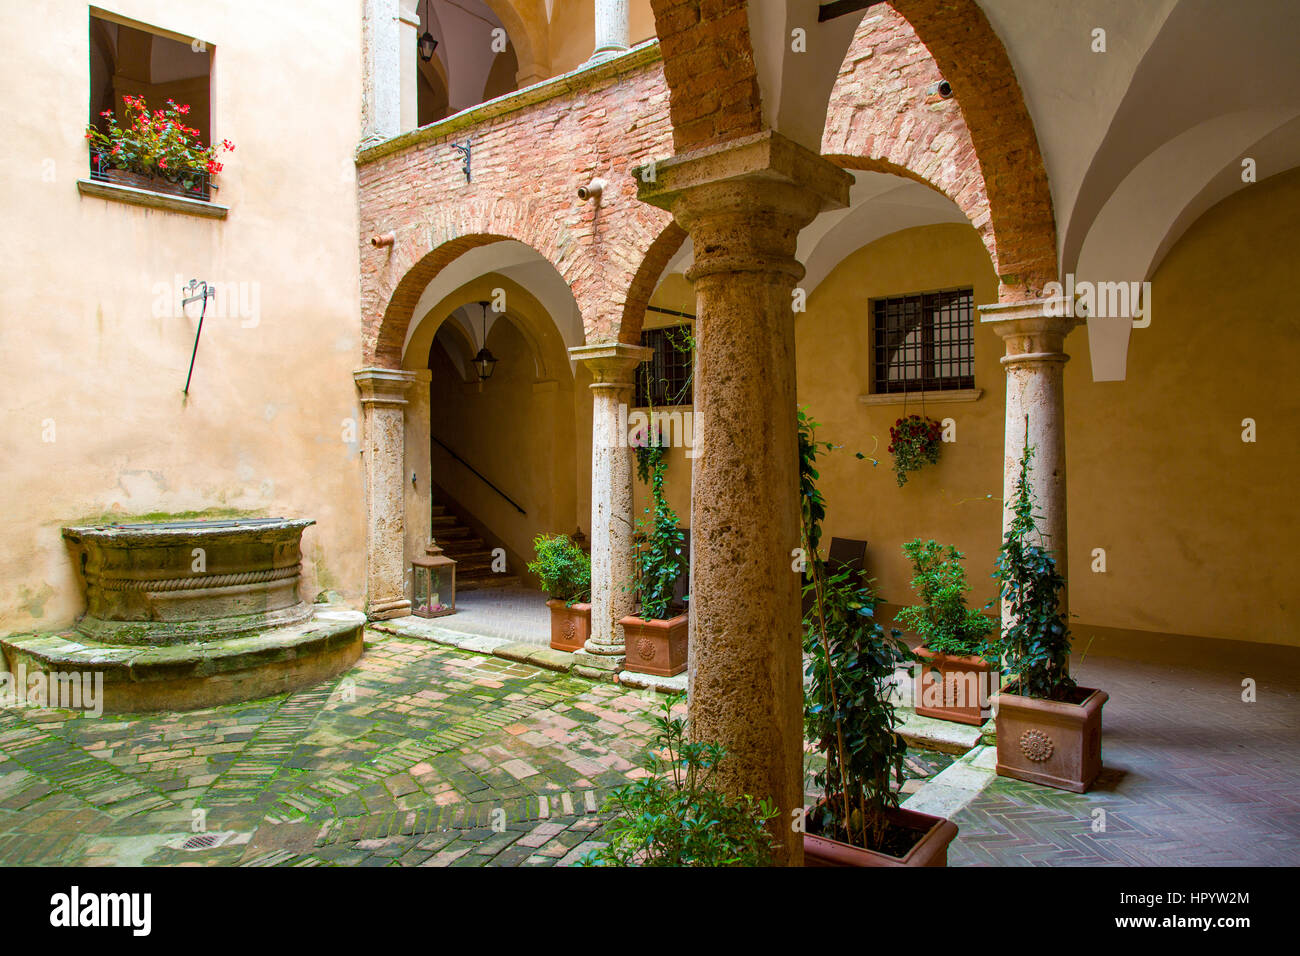 Inner courtyard and water well, Montepulciano, Tuscany, Italy - Stock Image